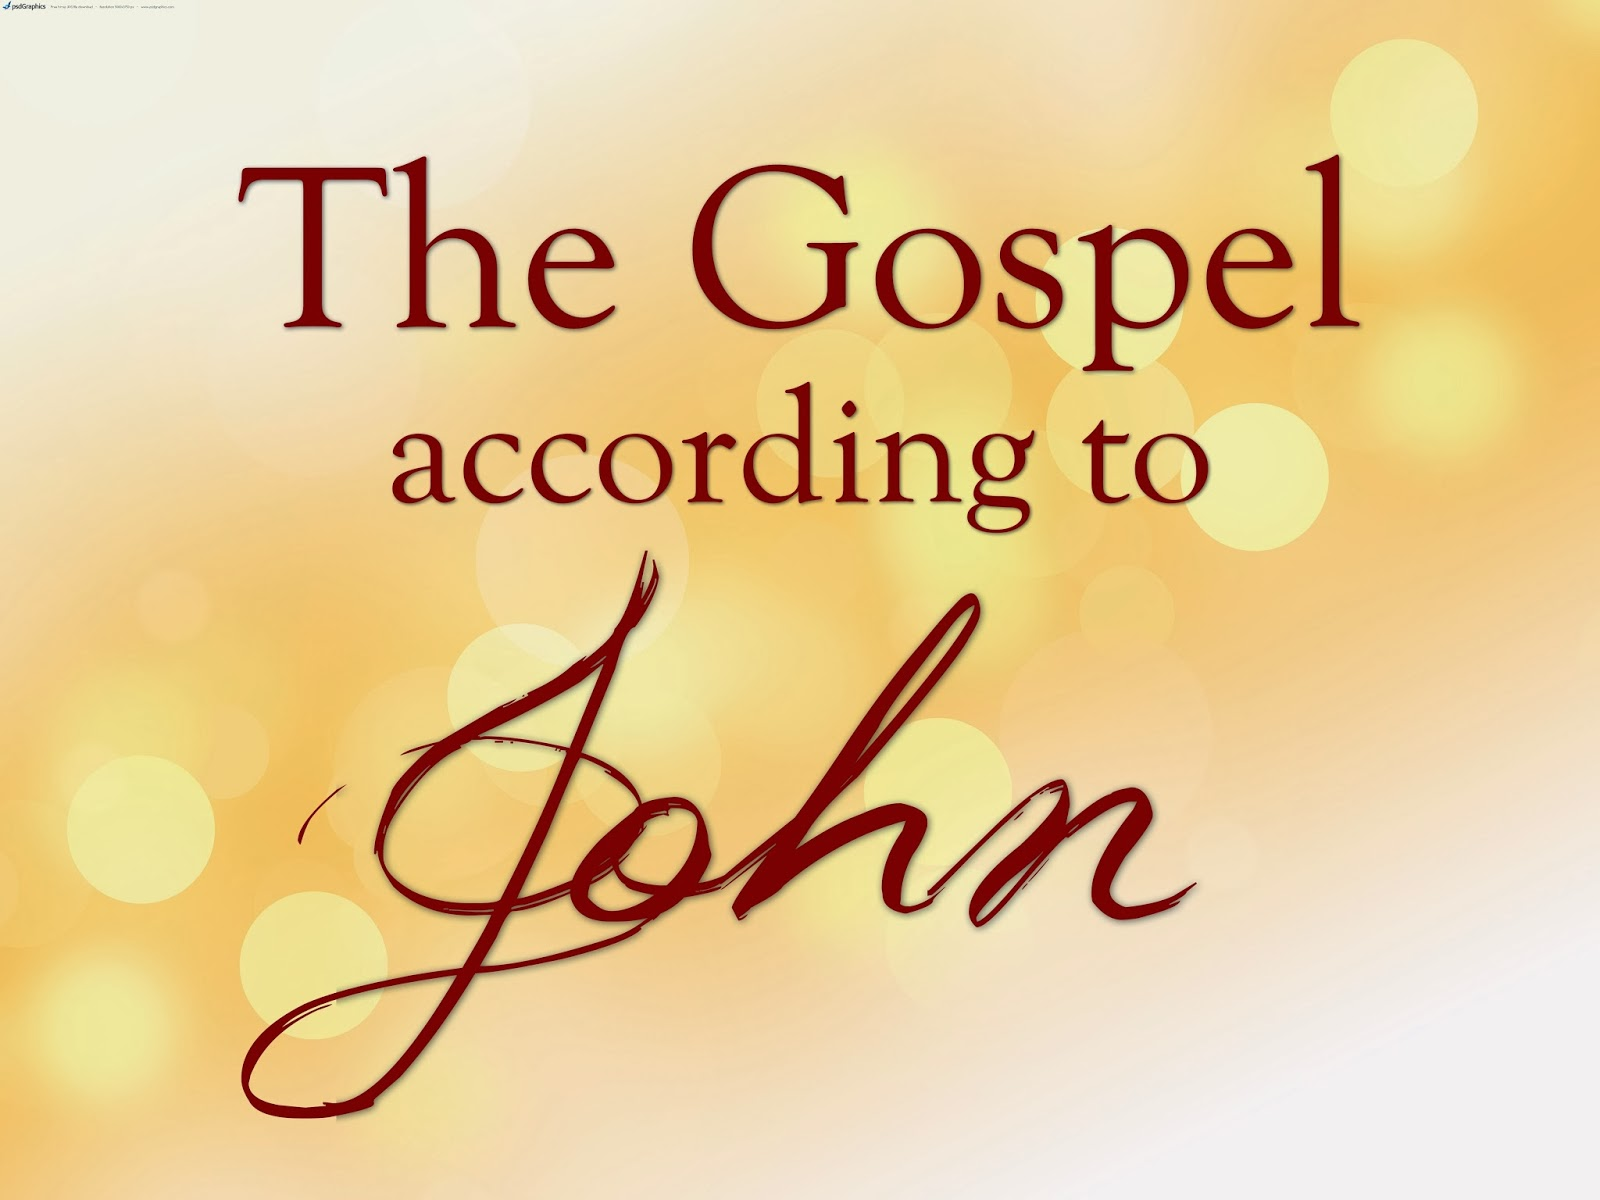 the gospel of john an The gospel of the beloved disciple, john, the son of zebedee, is admittedly different from the synoptic gospels, matthew, mark and luke but different does not imply.